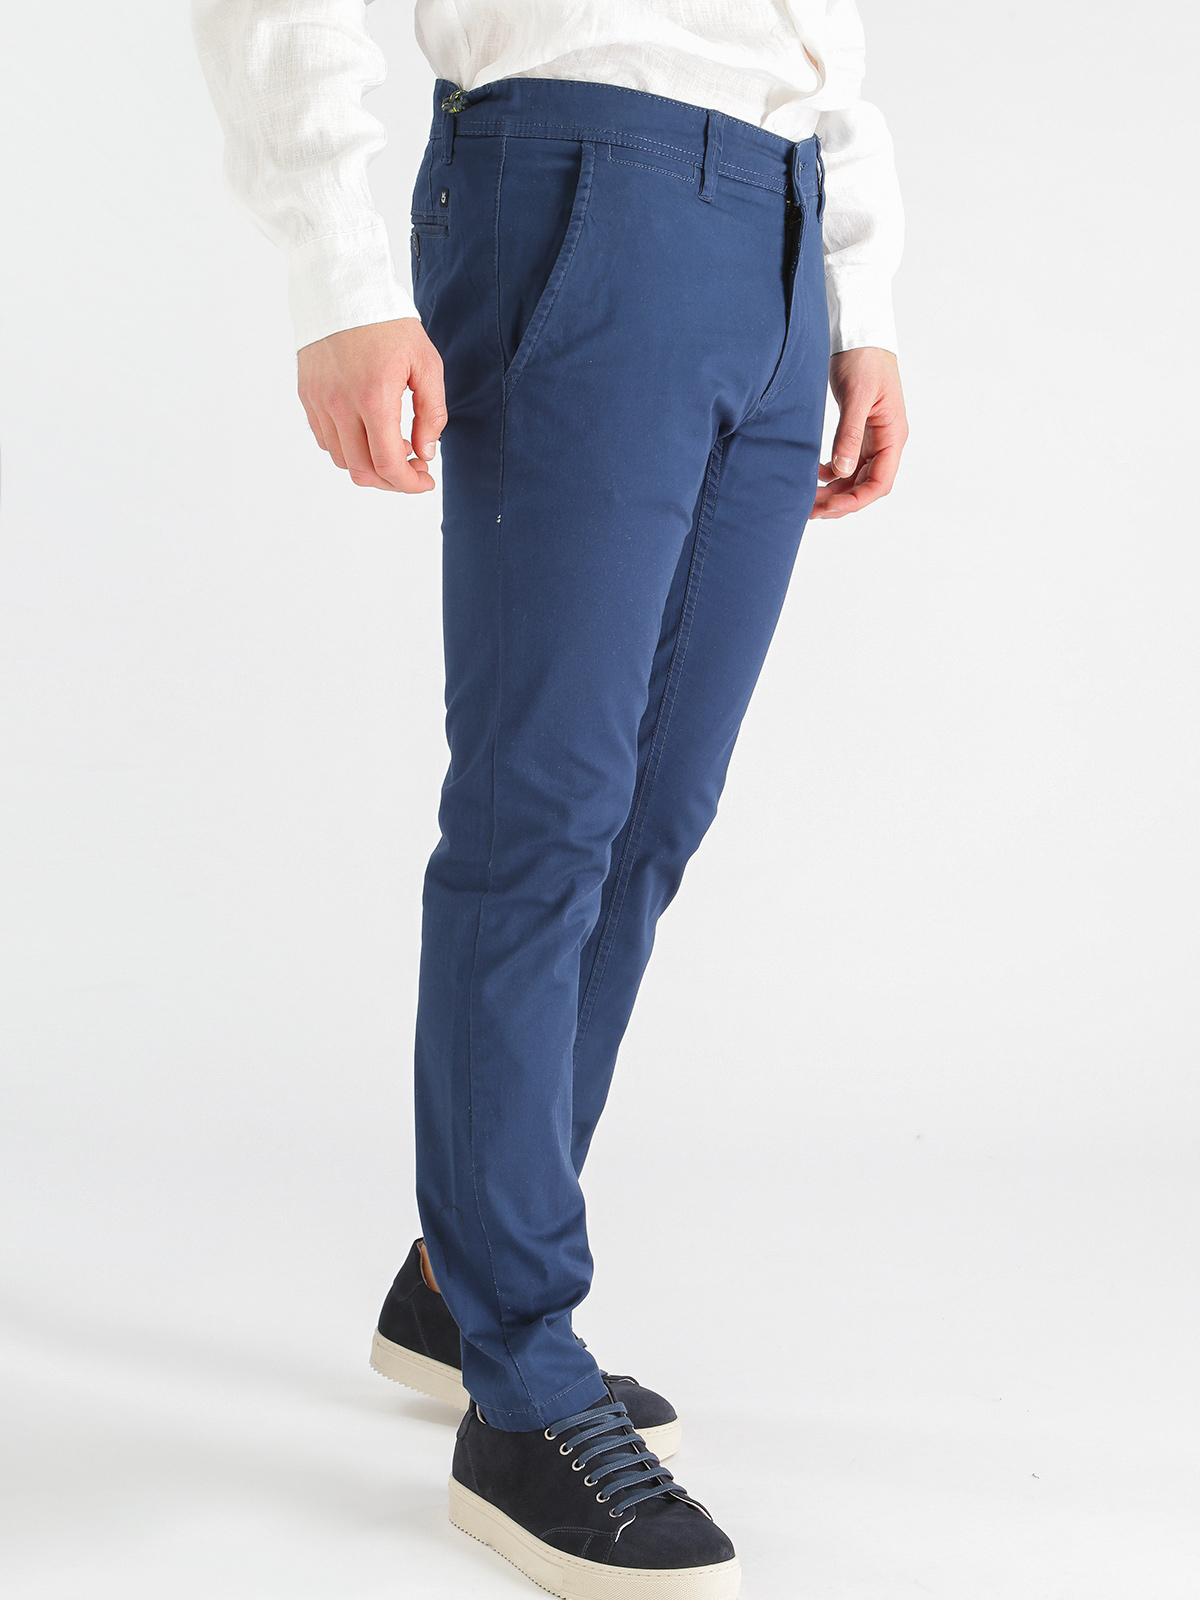 Pants Slim Fit Stretch Cotton